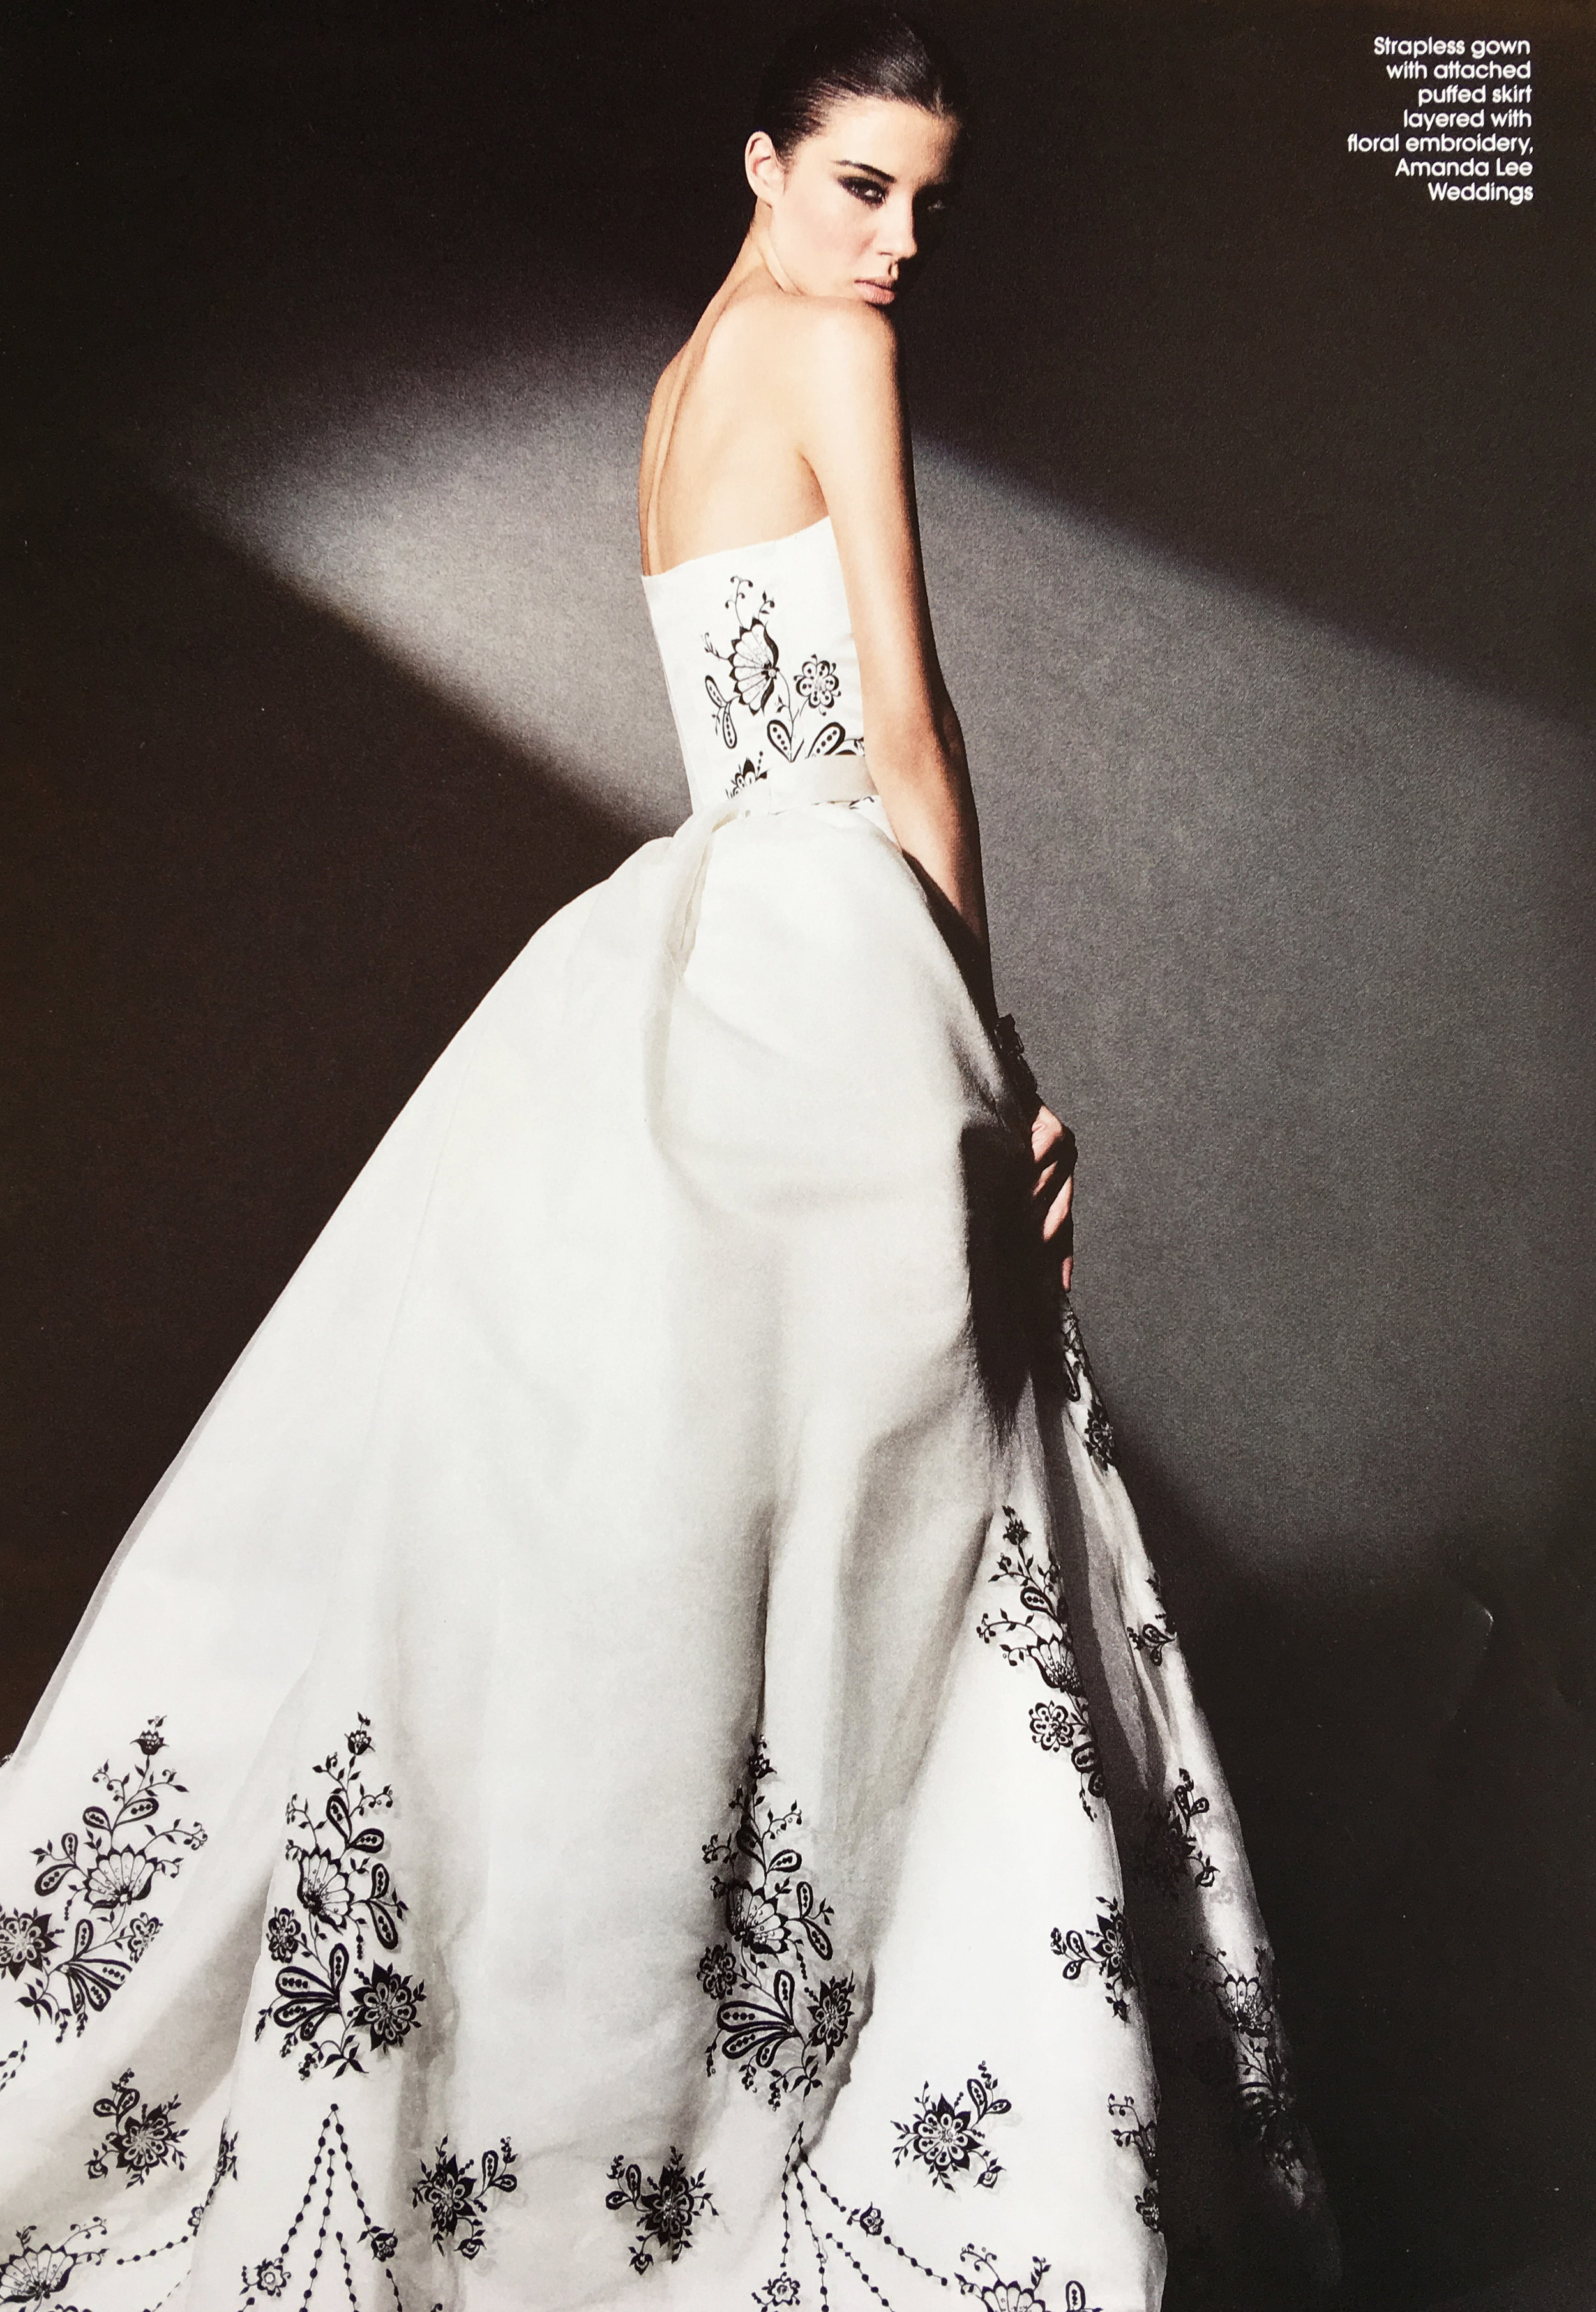 - Fans of Audrey Hepburn would have been familiar with the stunning embroidered gown she wore in the movie